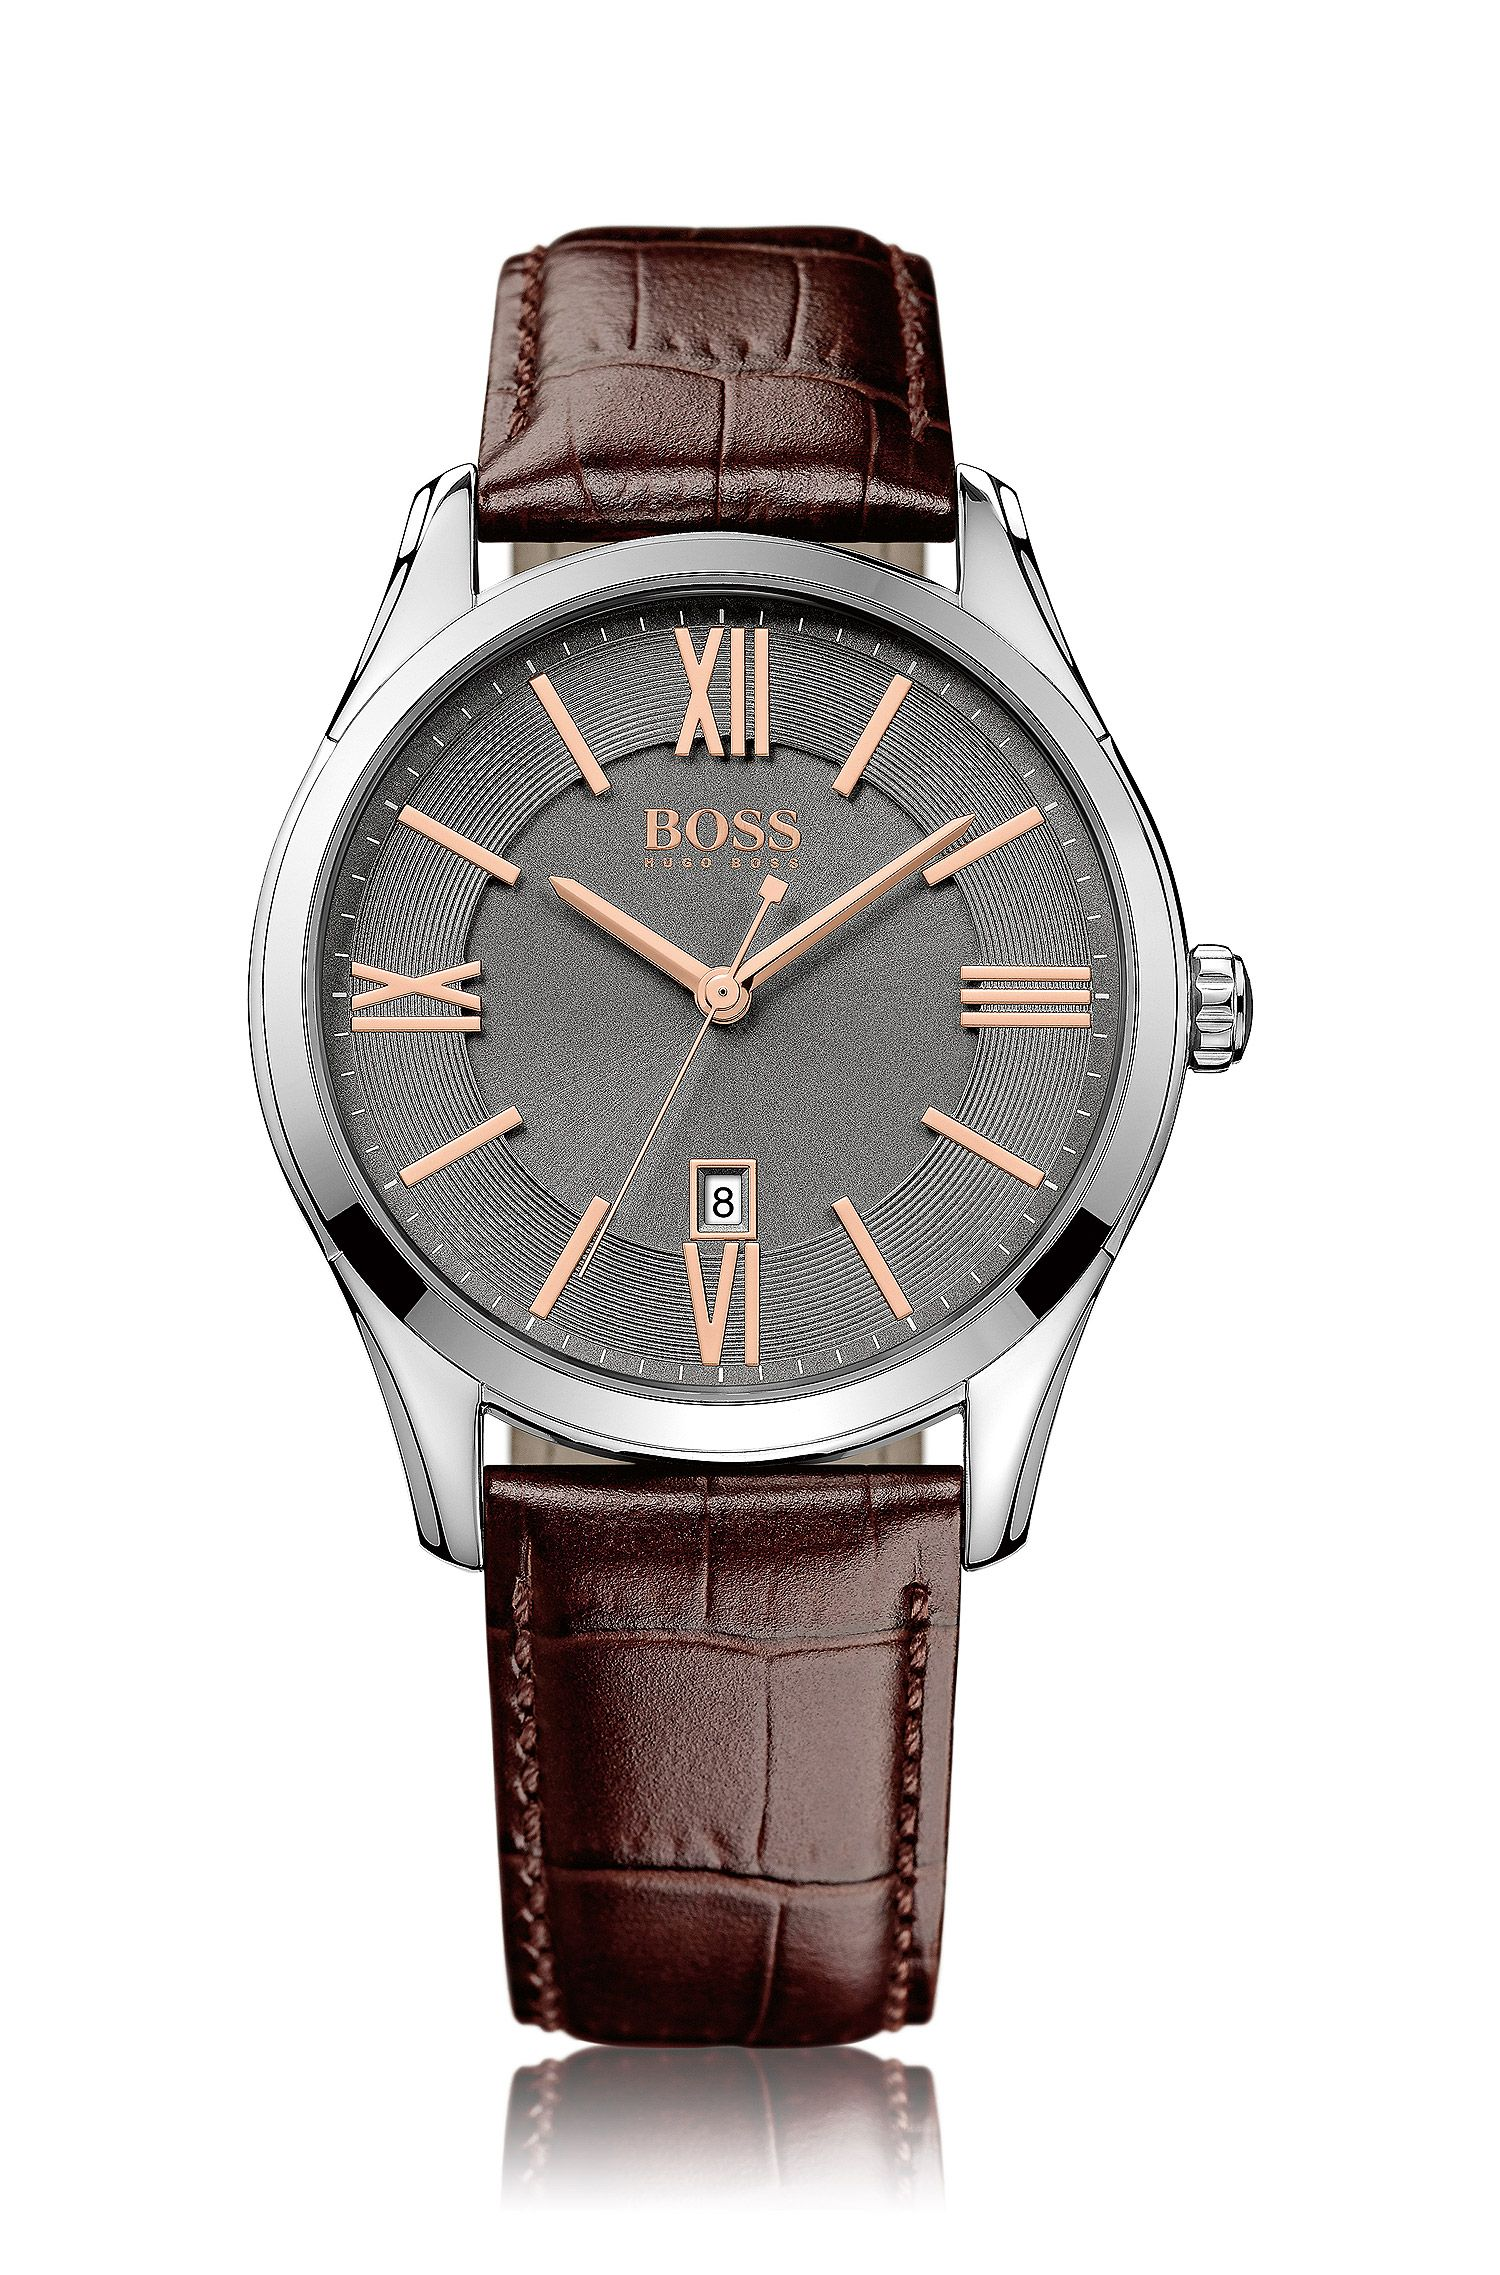 Polished stainless-steel watch with grey sunray dial and leather strap